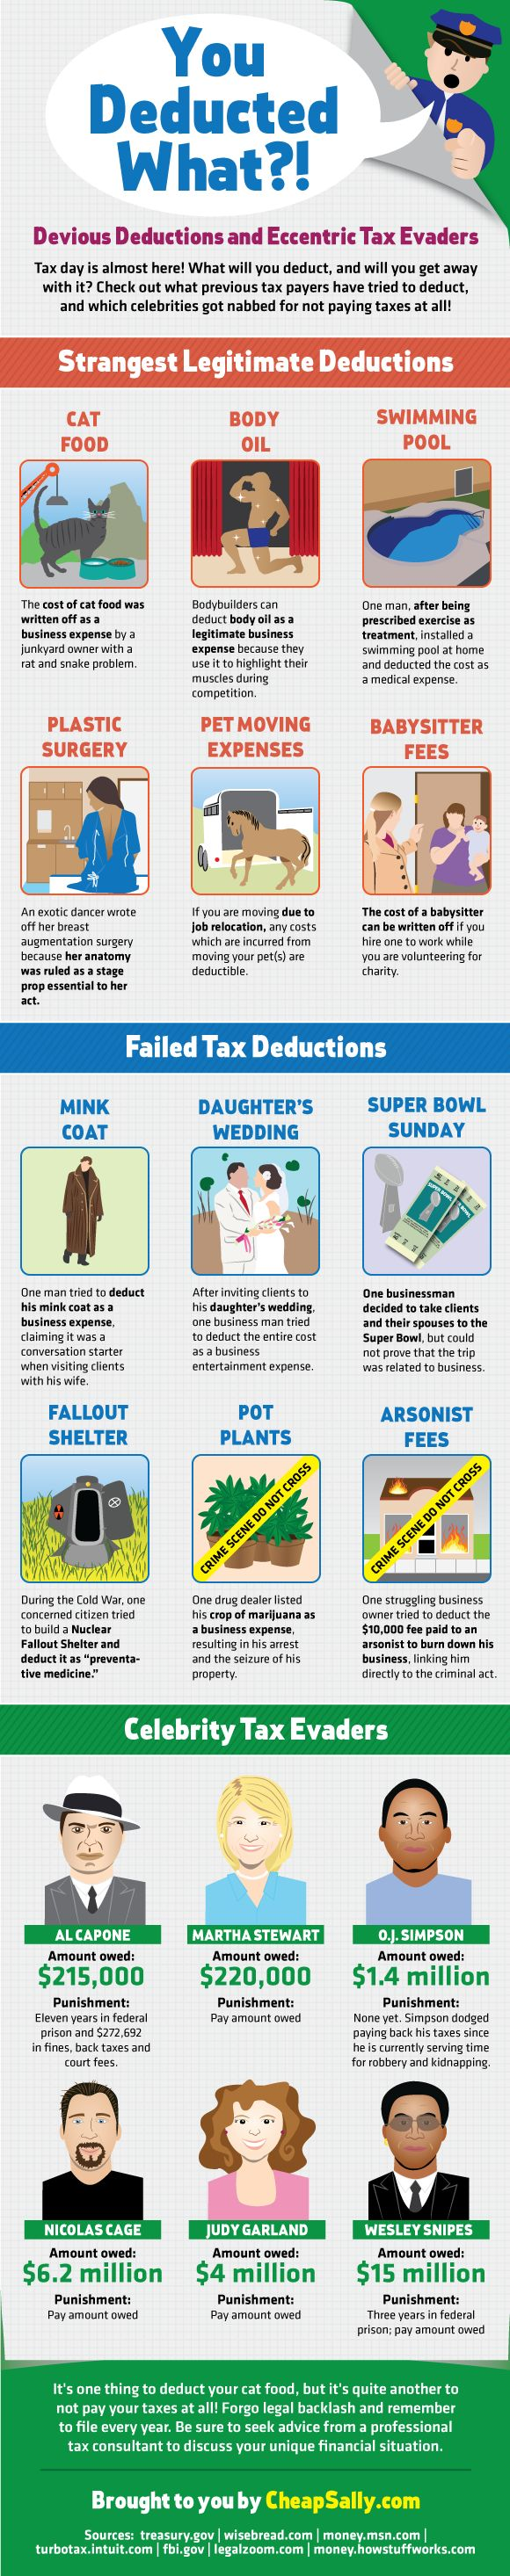 More crazy tax deductions! via @huffingtonpost #infographic